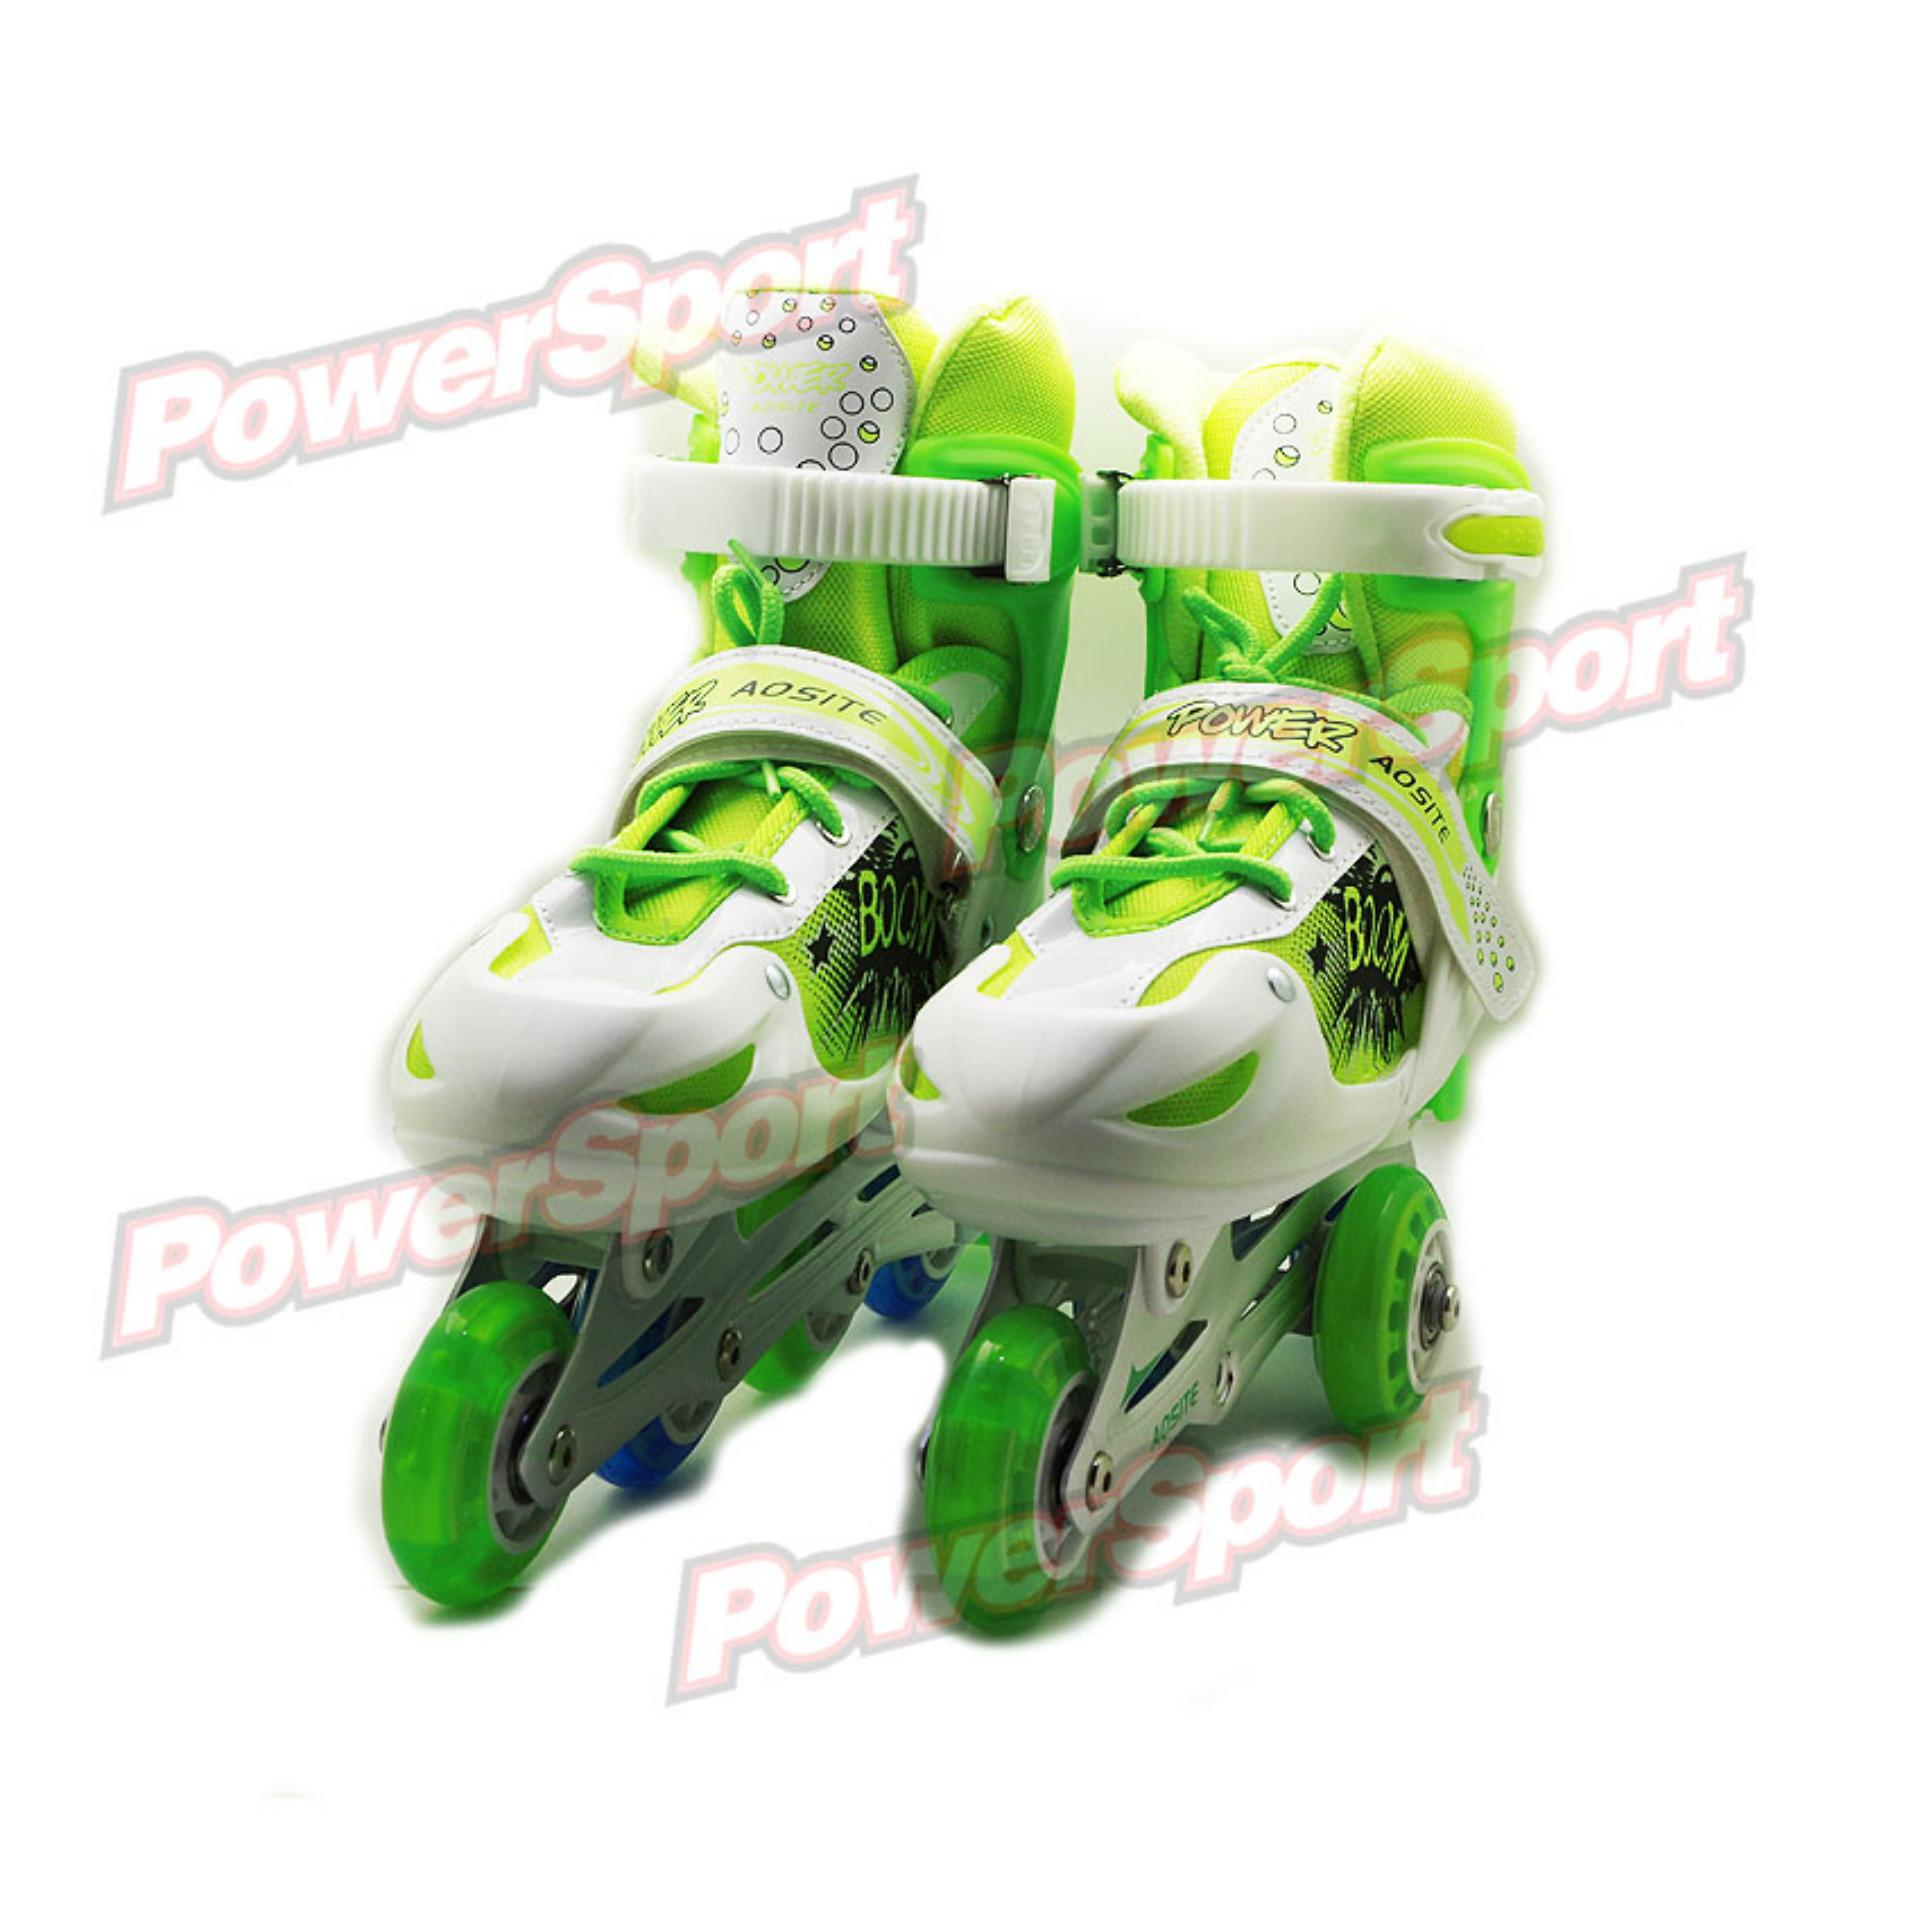 PowerSport Boom inLine Skate Sepatu Roda Light-Up Adjustable Wheel L (38-42 26bb7e8918